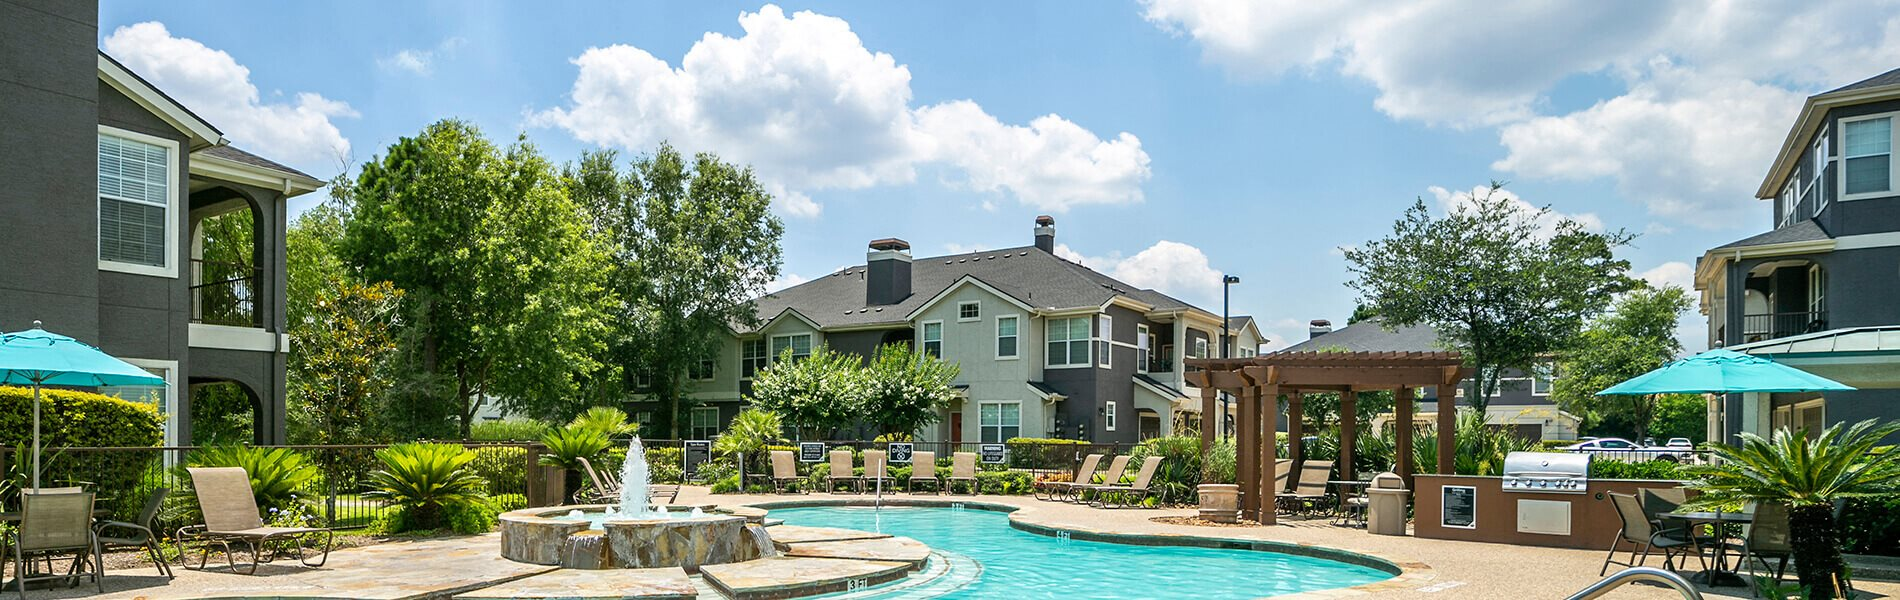 Pool at The Dominion Apartments in Conroe, TX